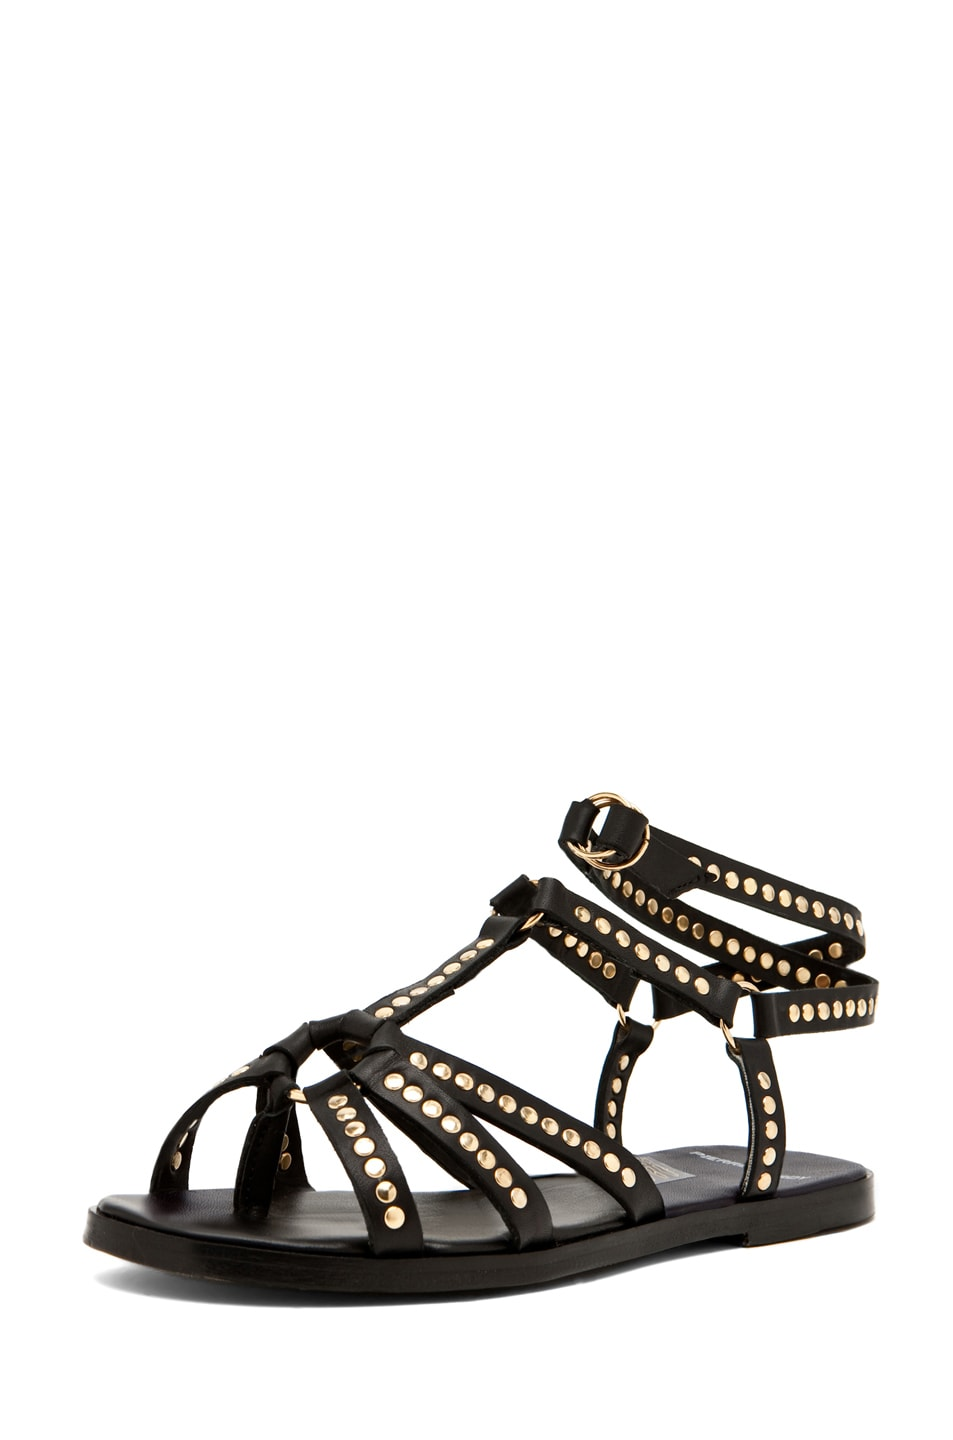 Image 1 of Pierre Hardy Leather Studded Sandal/Gold in Black